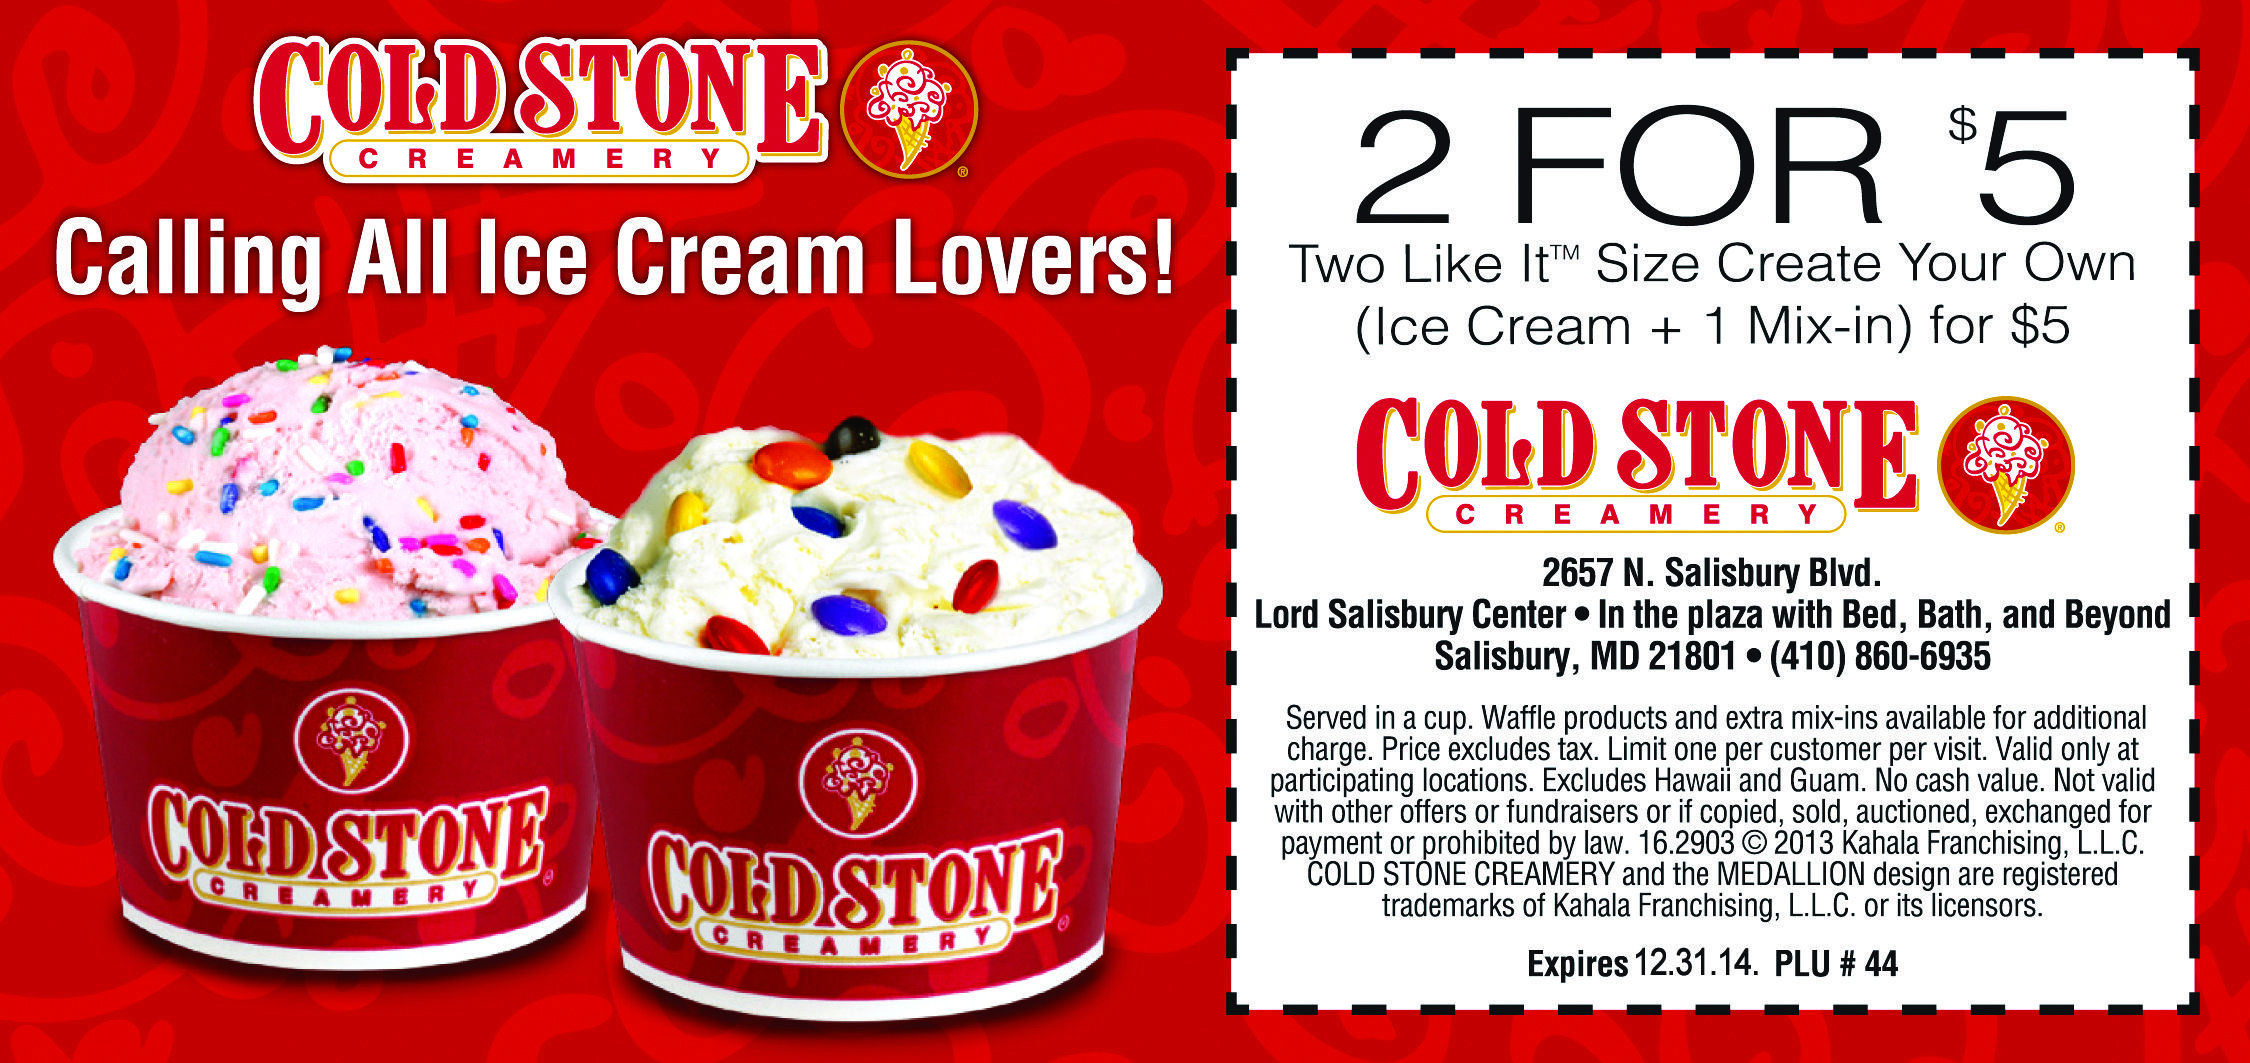 photo relating to Cold Stone Printable Coupons referred to as Pin upon Frugals Discount coupons: Printable Coupon codes for Dining places